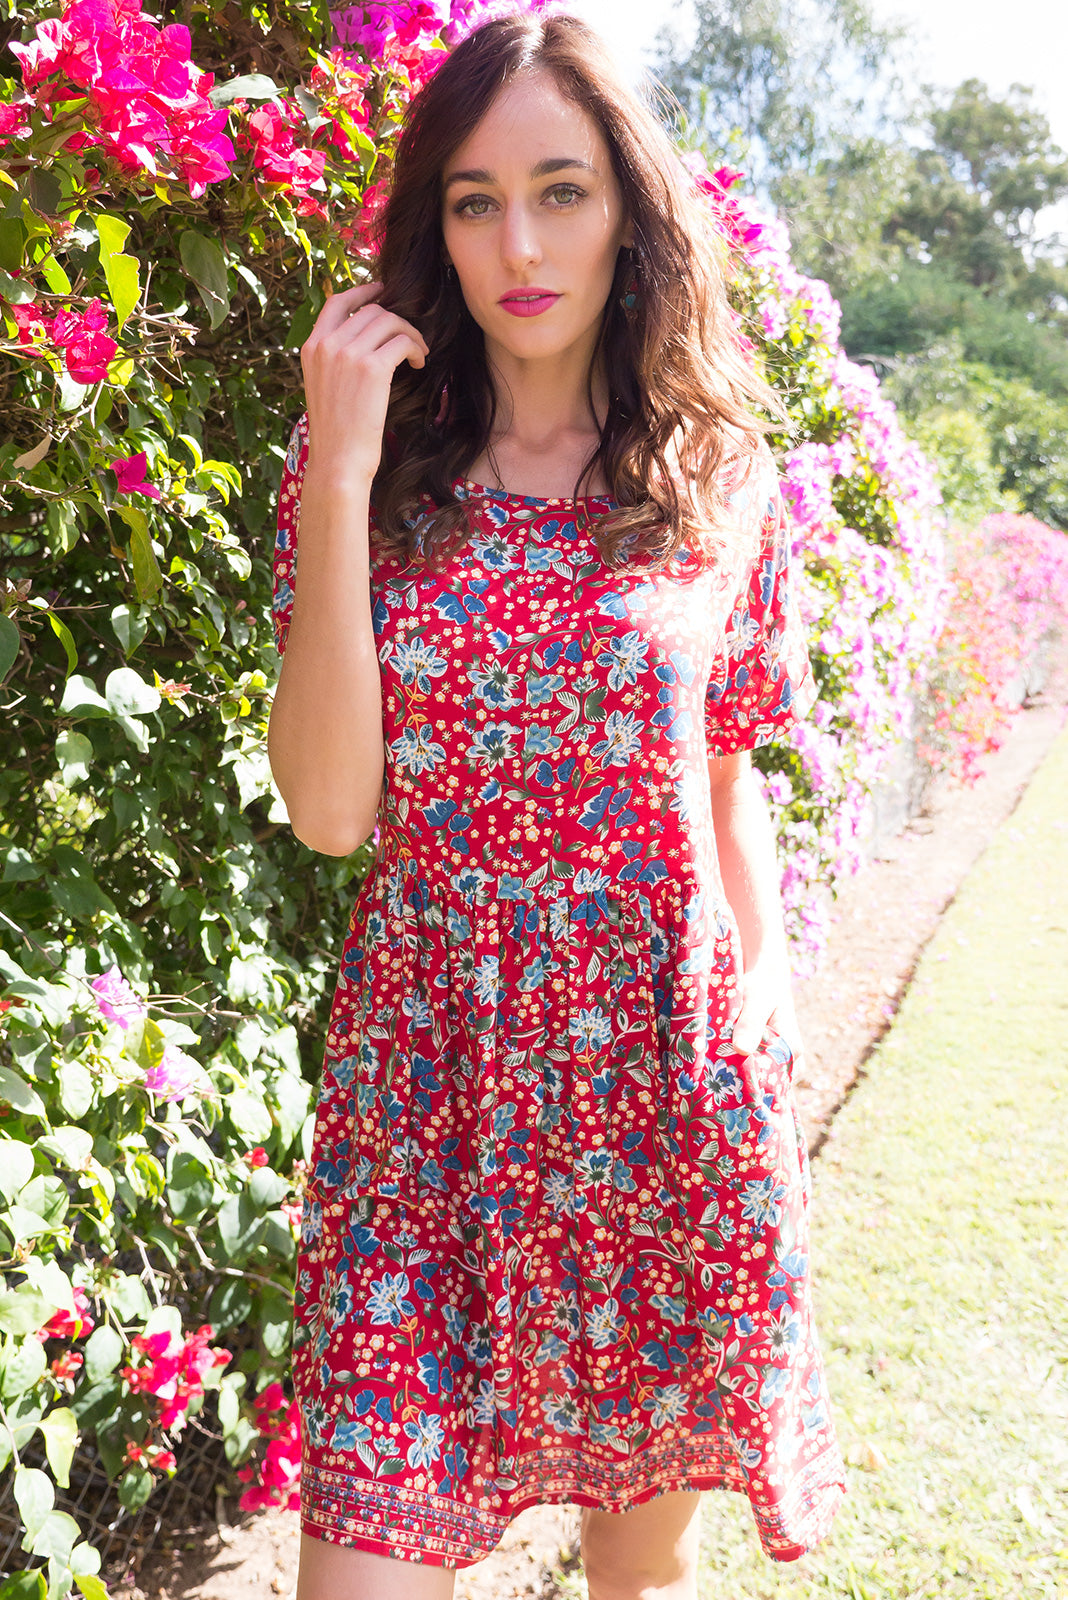 Blue Moon Rebecca Red Dress has a easy to wear relaxed fit and features cuffed sleeves, button tabs at the waist and comes in a beautiful vibrant red floral print on woven rayon